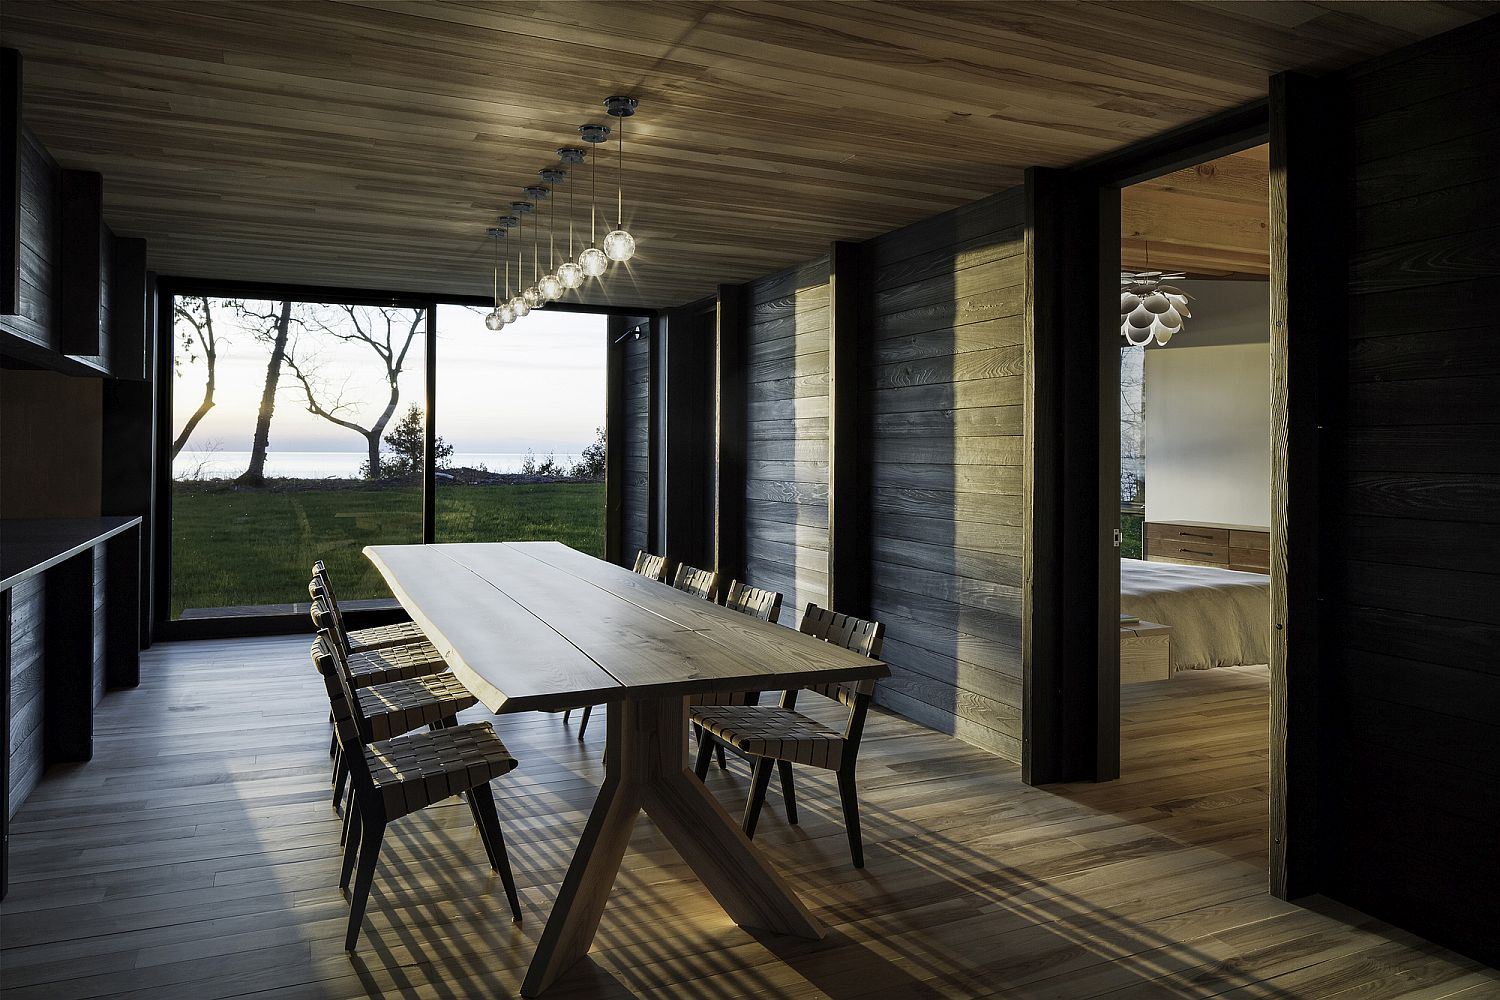 Dining-area-combines-rustic-wooden-decor-with-sparkling-lighting